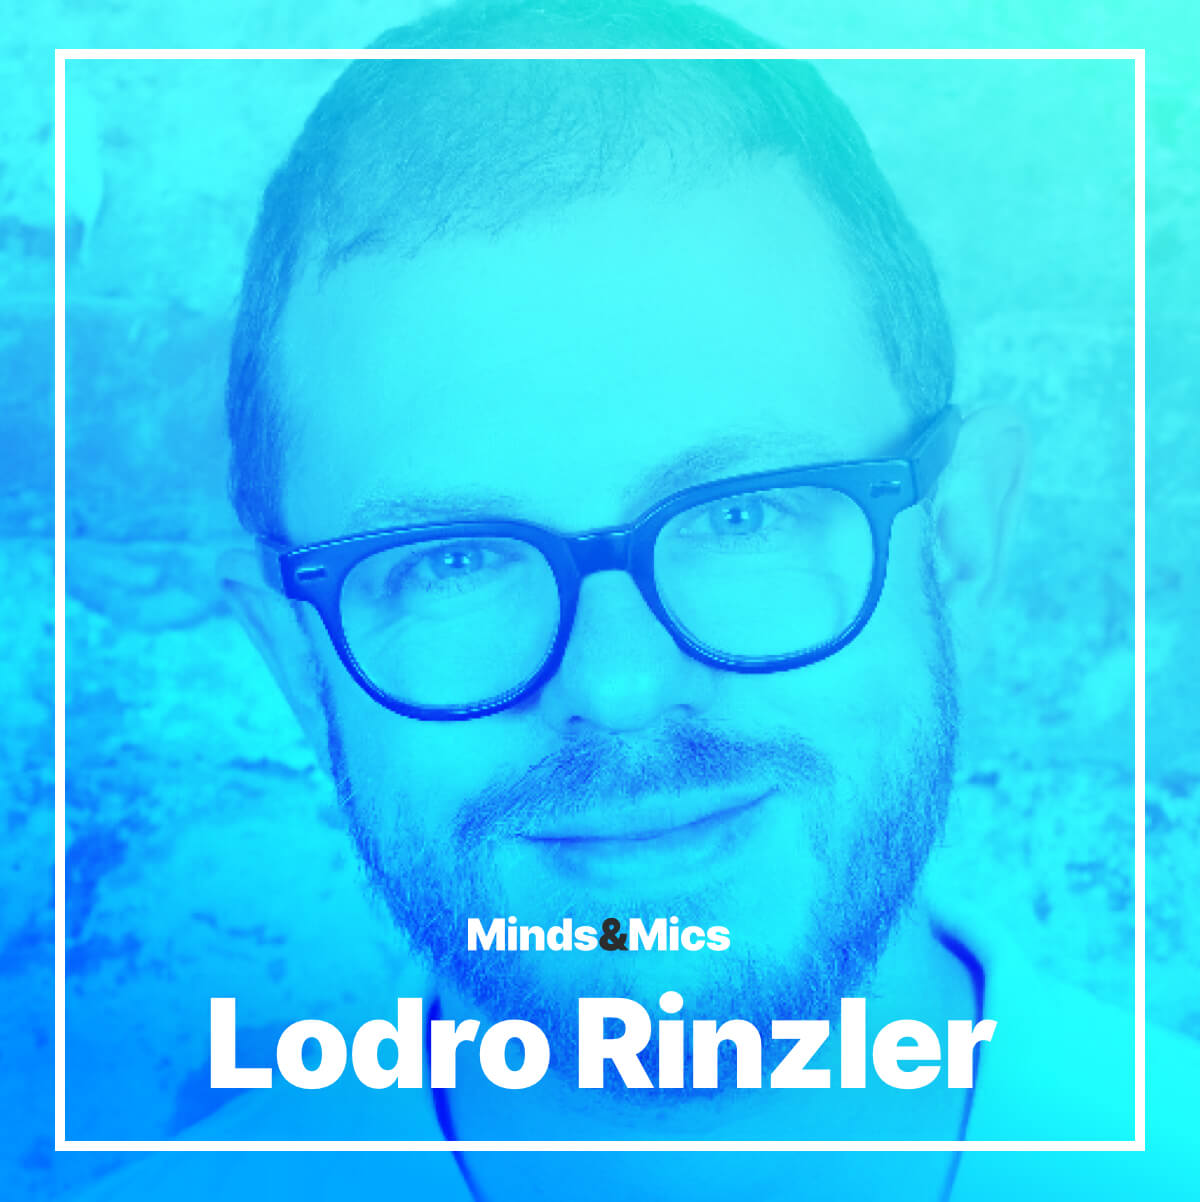 Lodro Rinzler Minds and Mics Wignall Buddhist Way Through anxiety